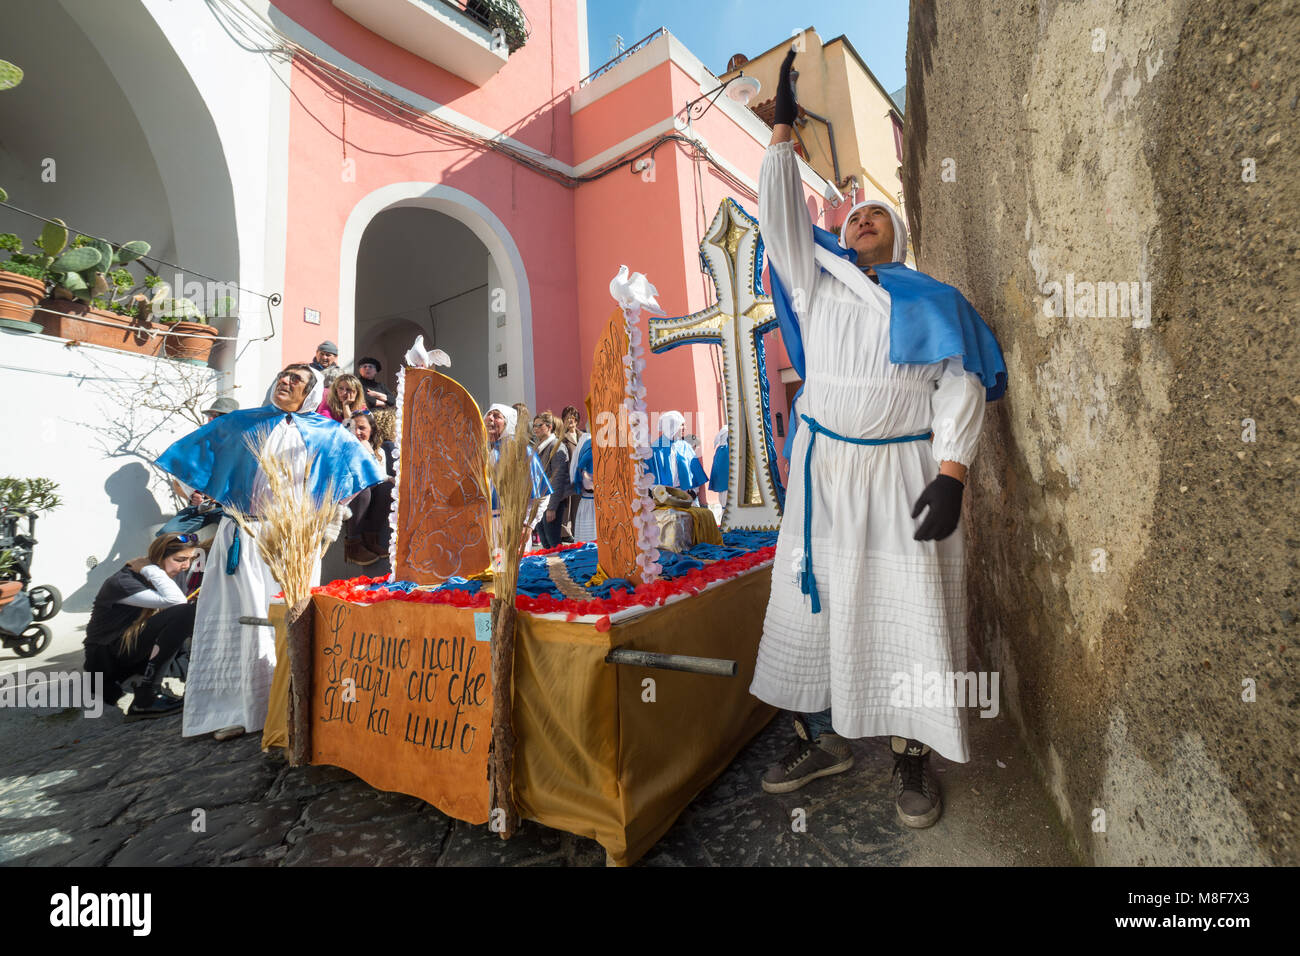 PROCIDA, ITALY - MARCH 25, 2016 - Every year the procession of the 'Misteri' is celebrated at Easter's - Stock Image